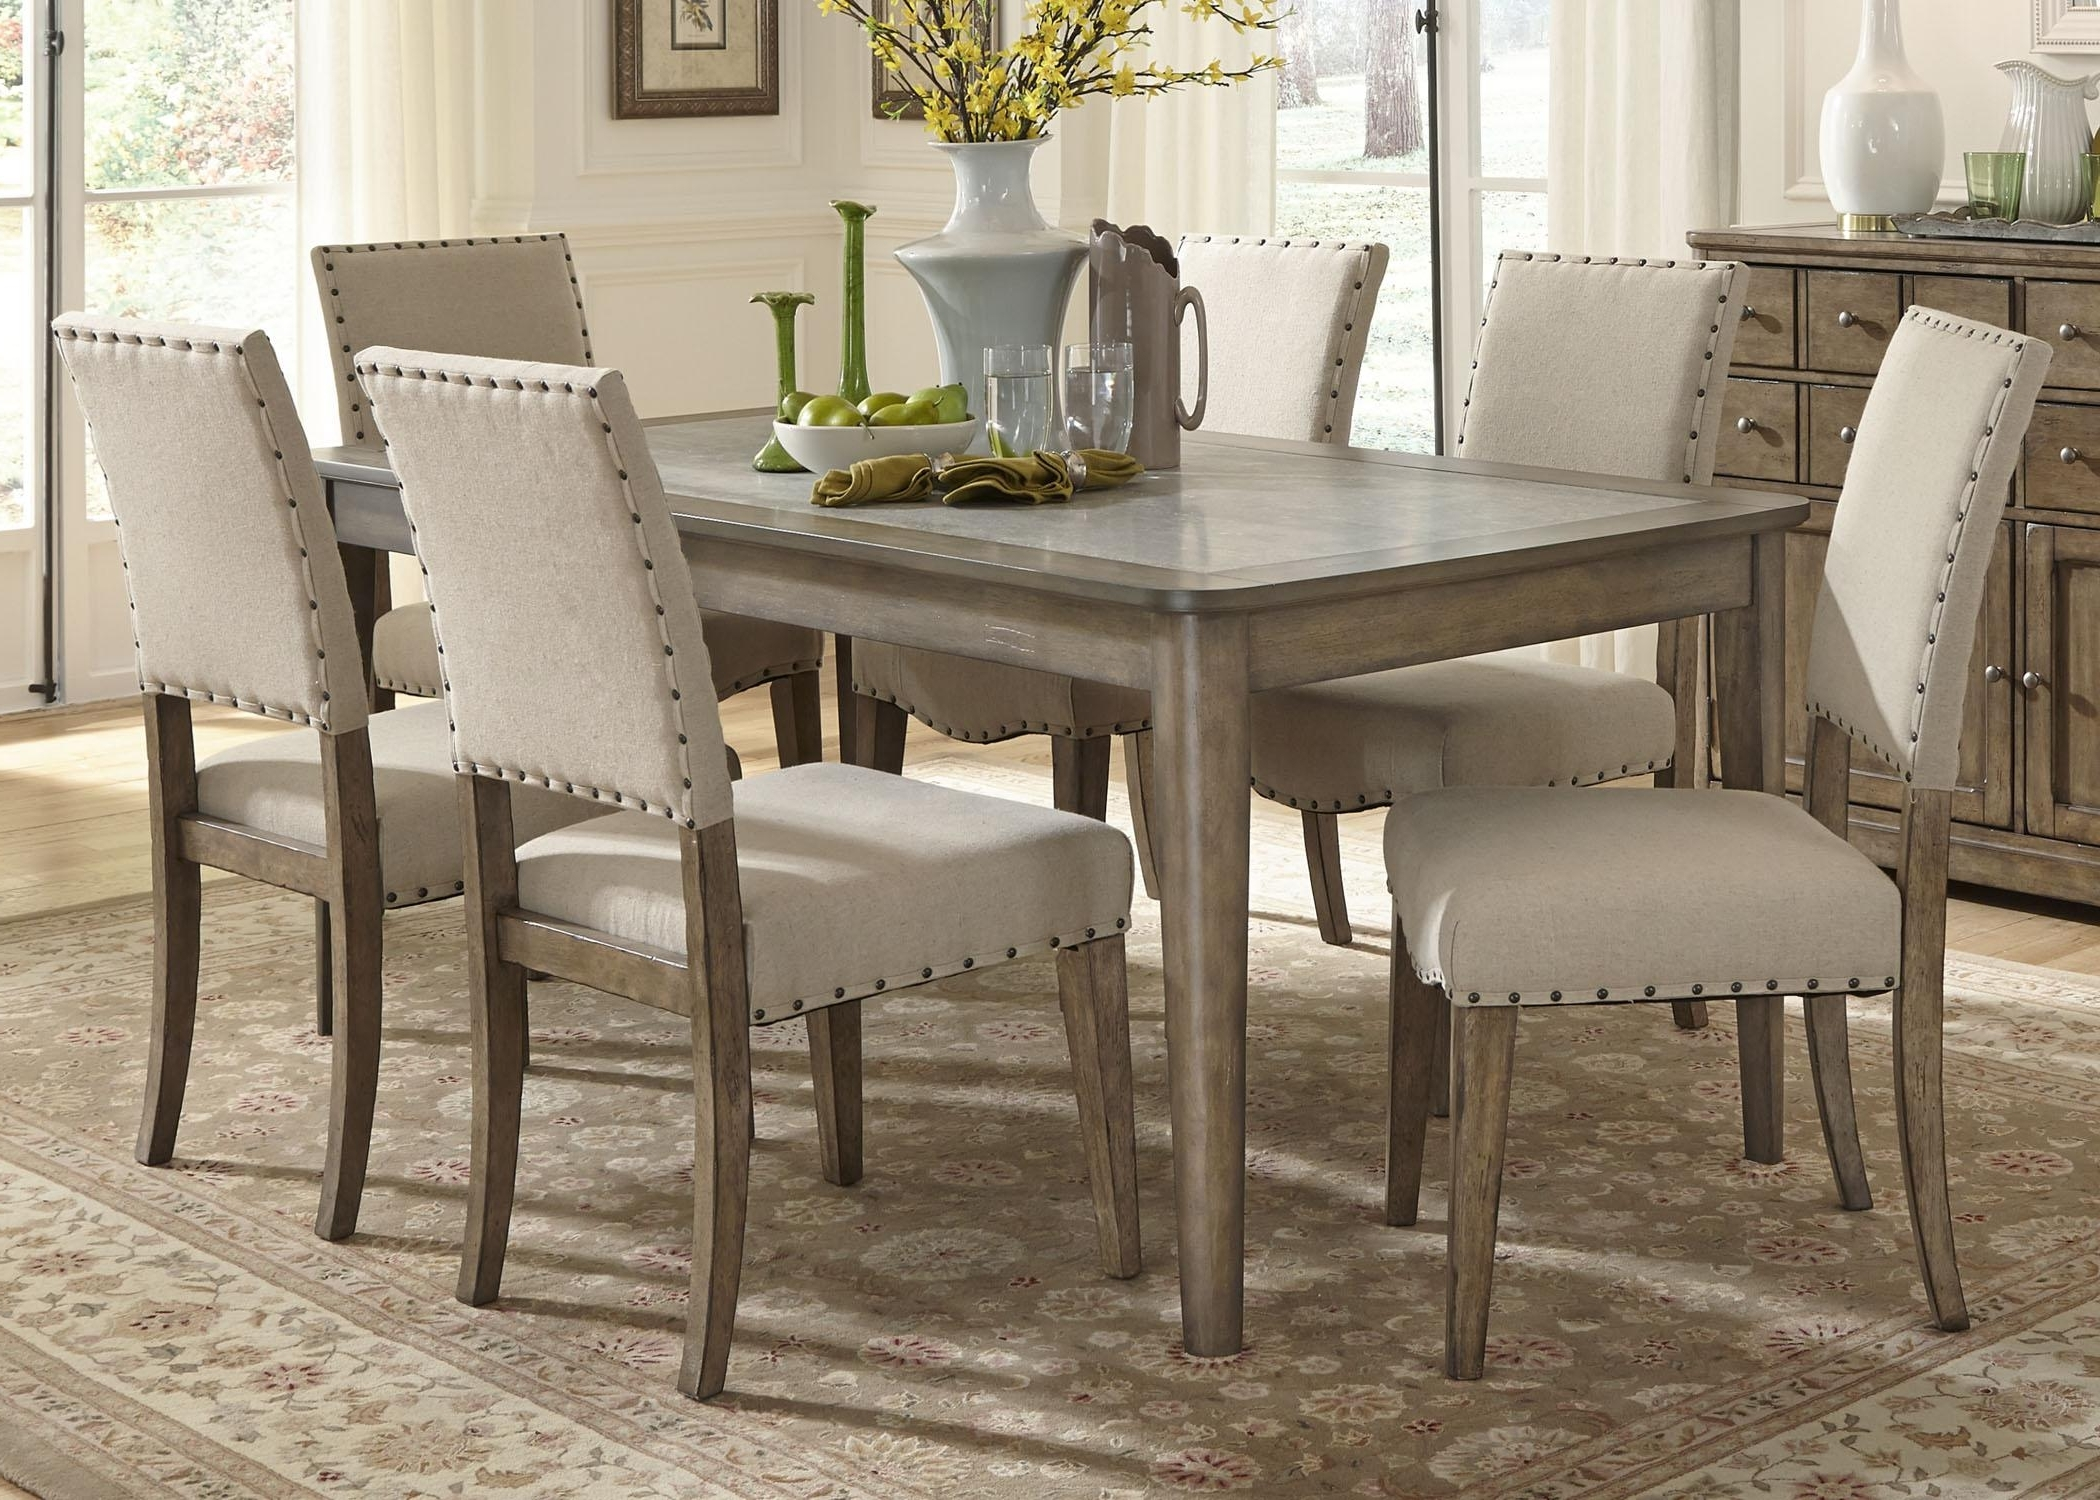 Most Recent Liberty Furniture Weatherford Casual Rustic 7 Piece Dining Table And In Dining Sets (View 21 of 25)